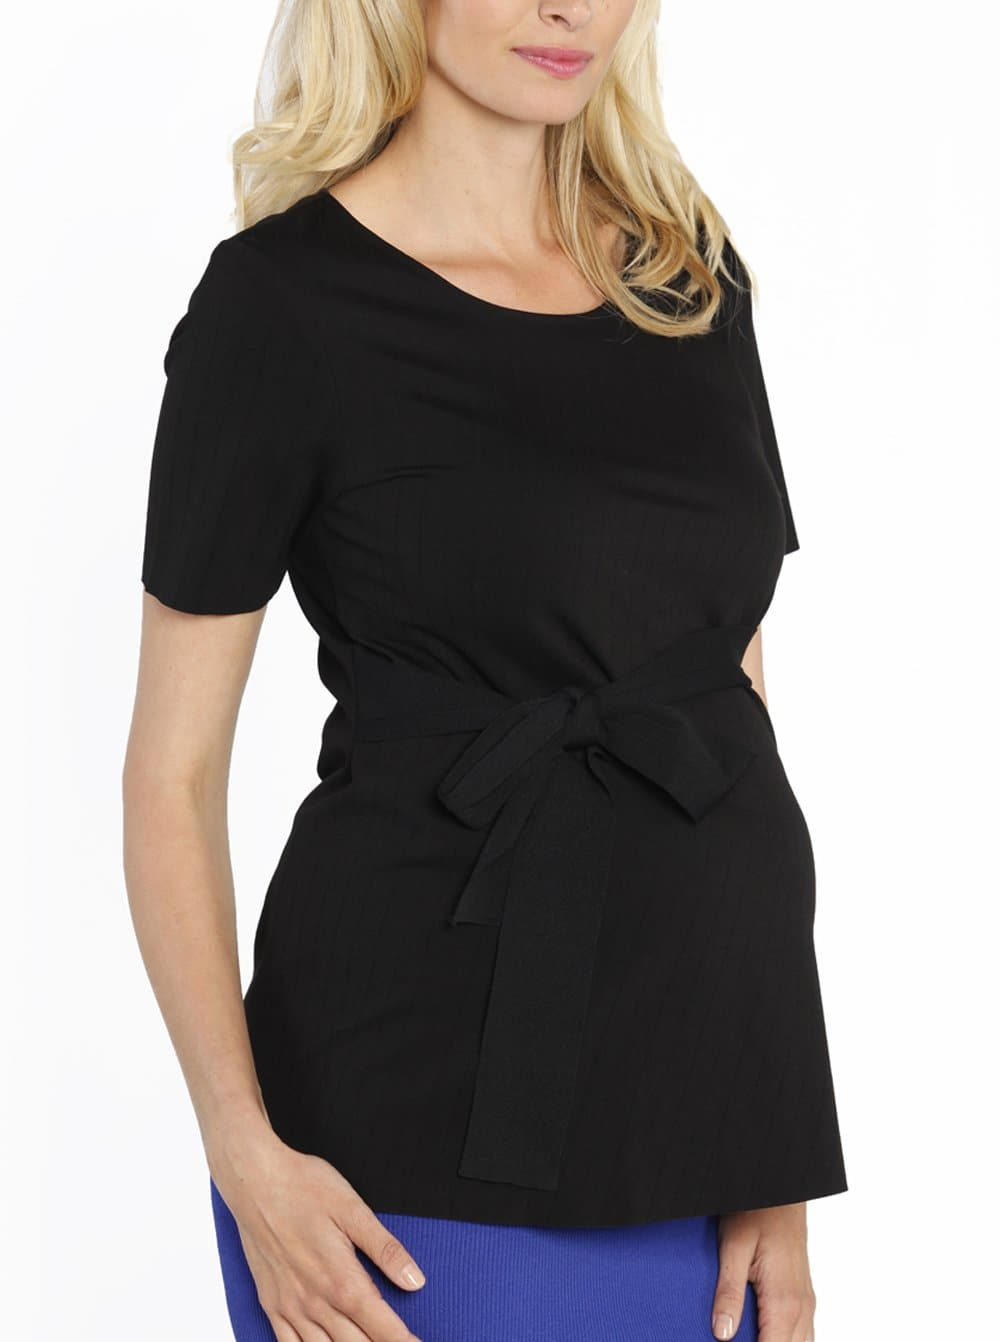 Maternity Short Sleeve Work Top with Tie Waist - Black - Angel Maternity - Maternity clothes - shop online